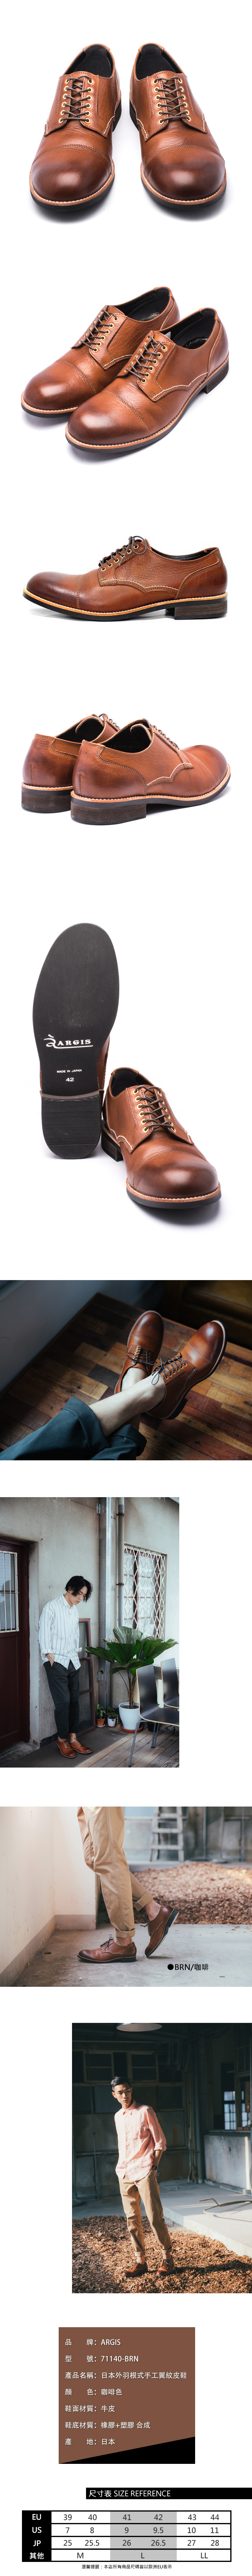 ARGIS Japanese outer feather root handmade wing leather shoes  71140 ... cf43ce5c458